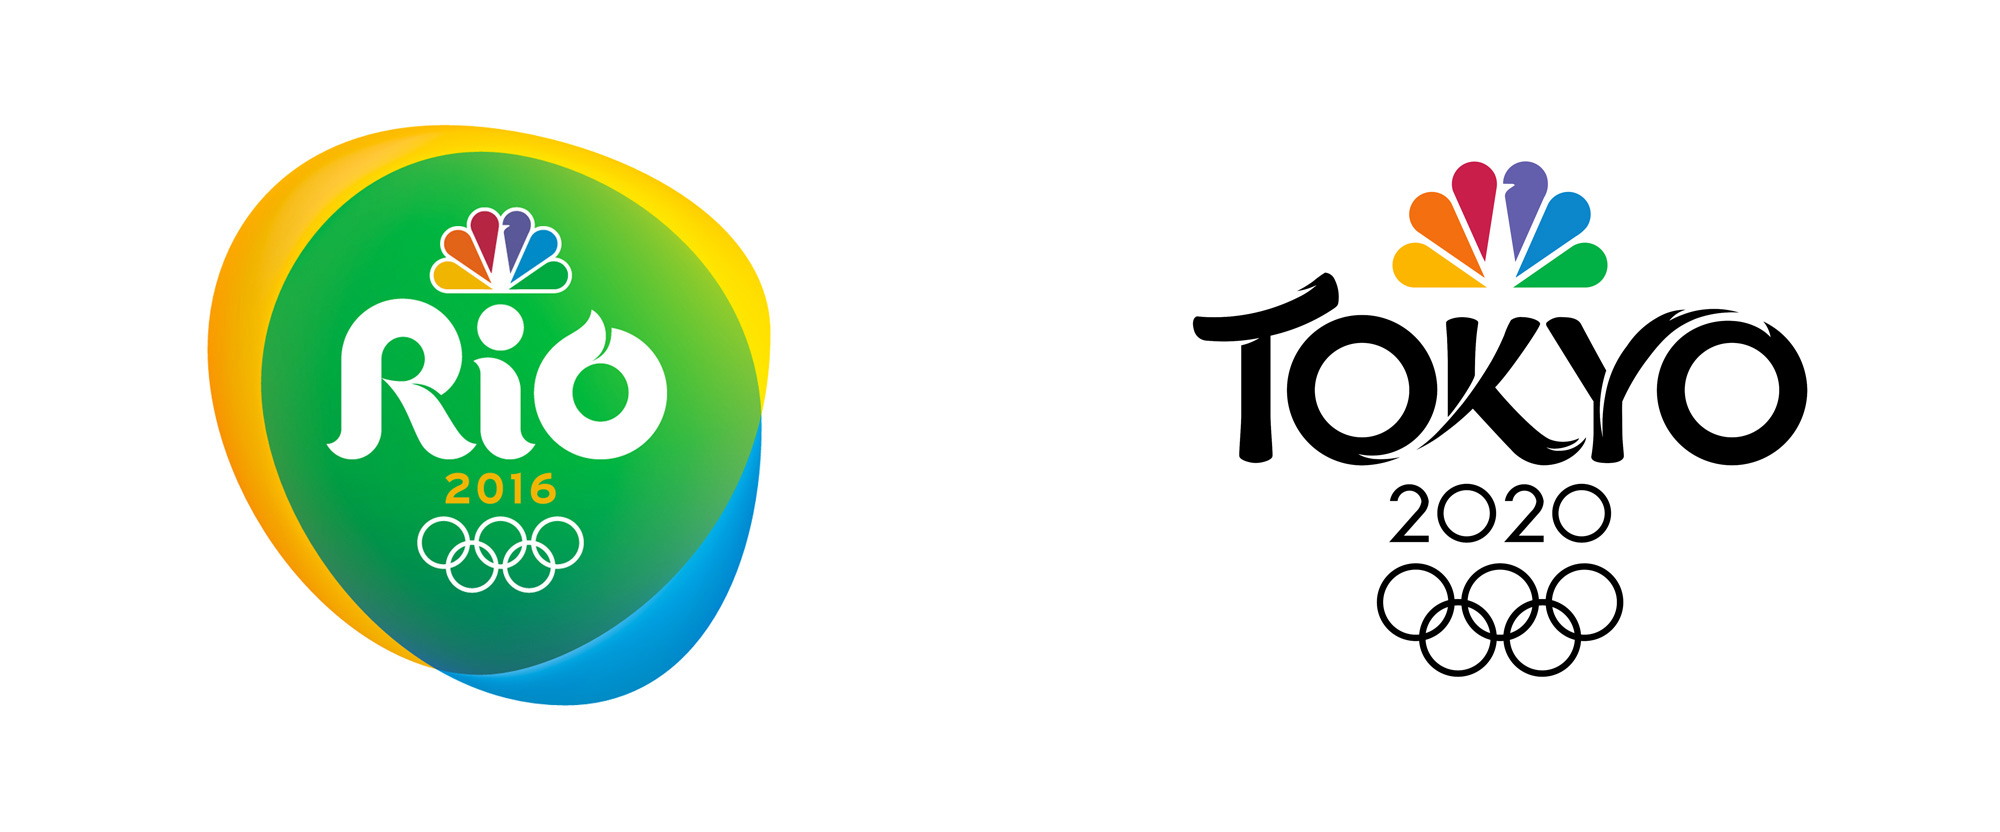 New Logo for NBC Olympics 2020 Broadcast by Mocean